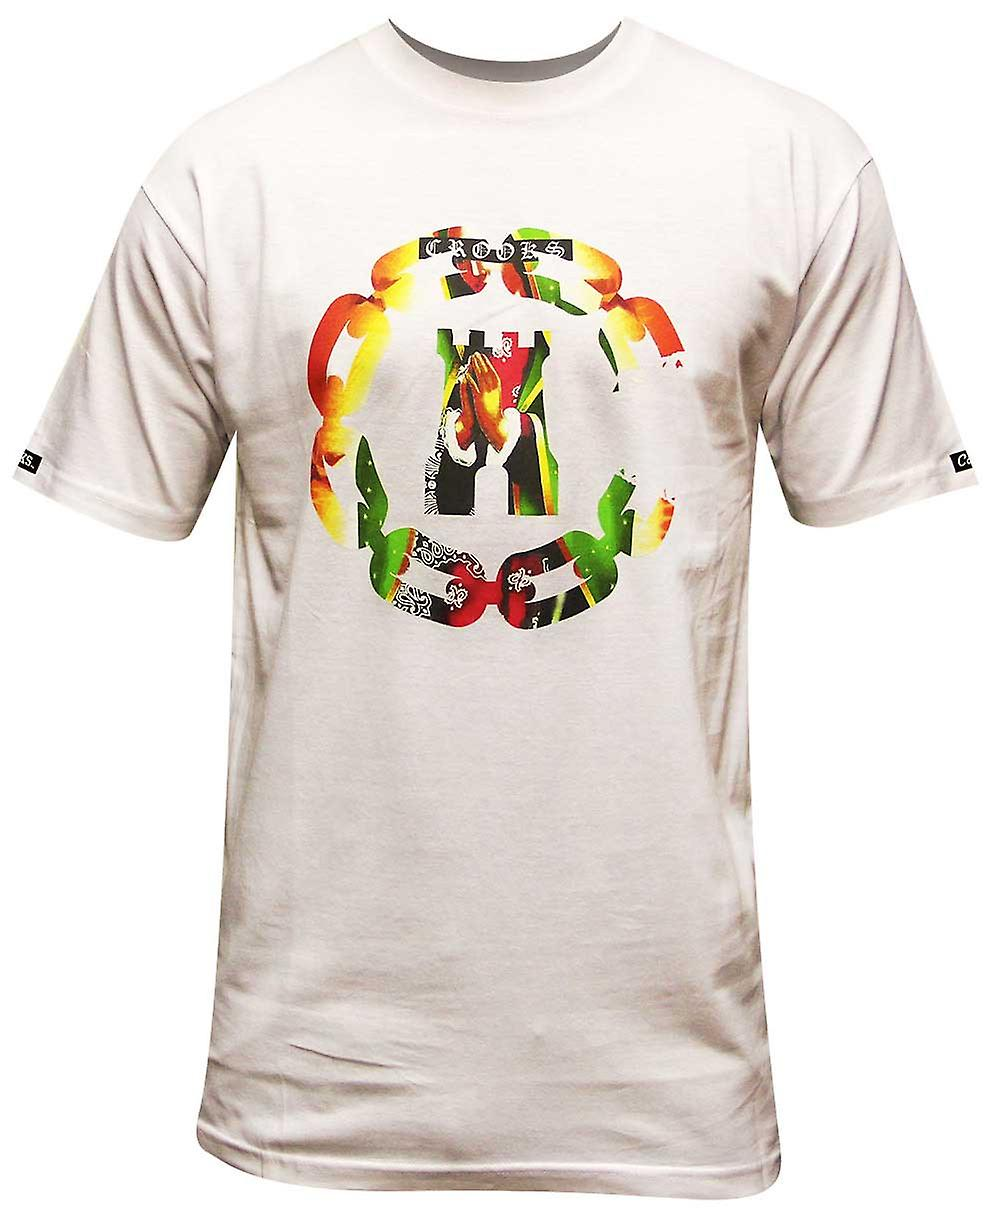 Crooks & Castles Apparition T-shirt White